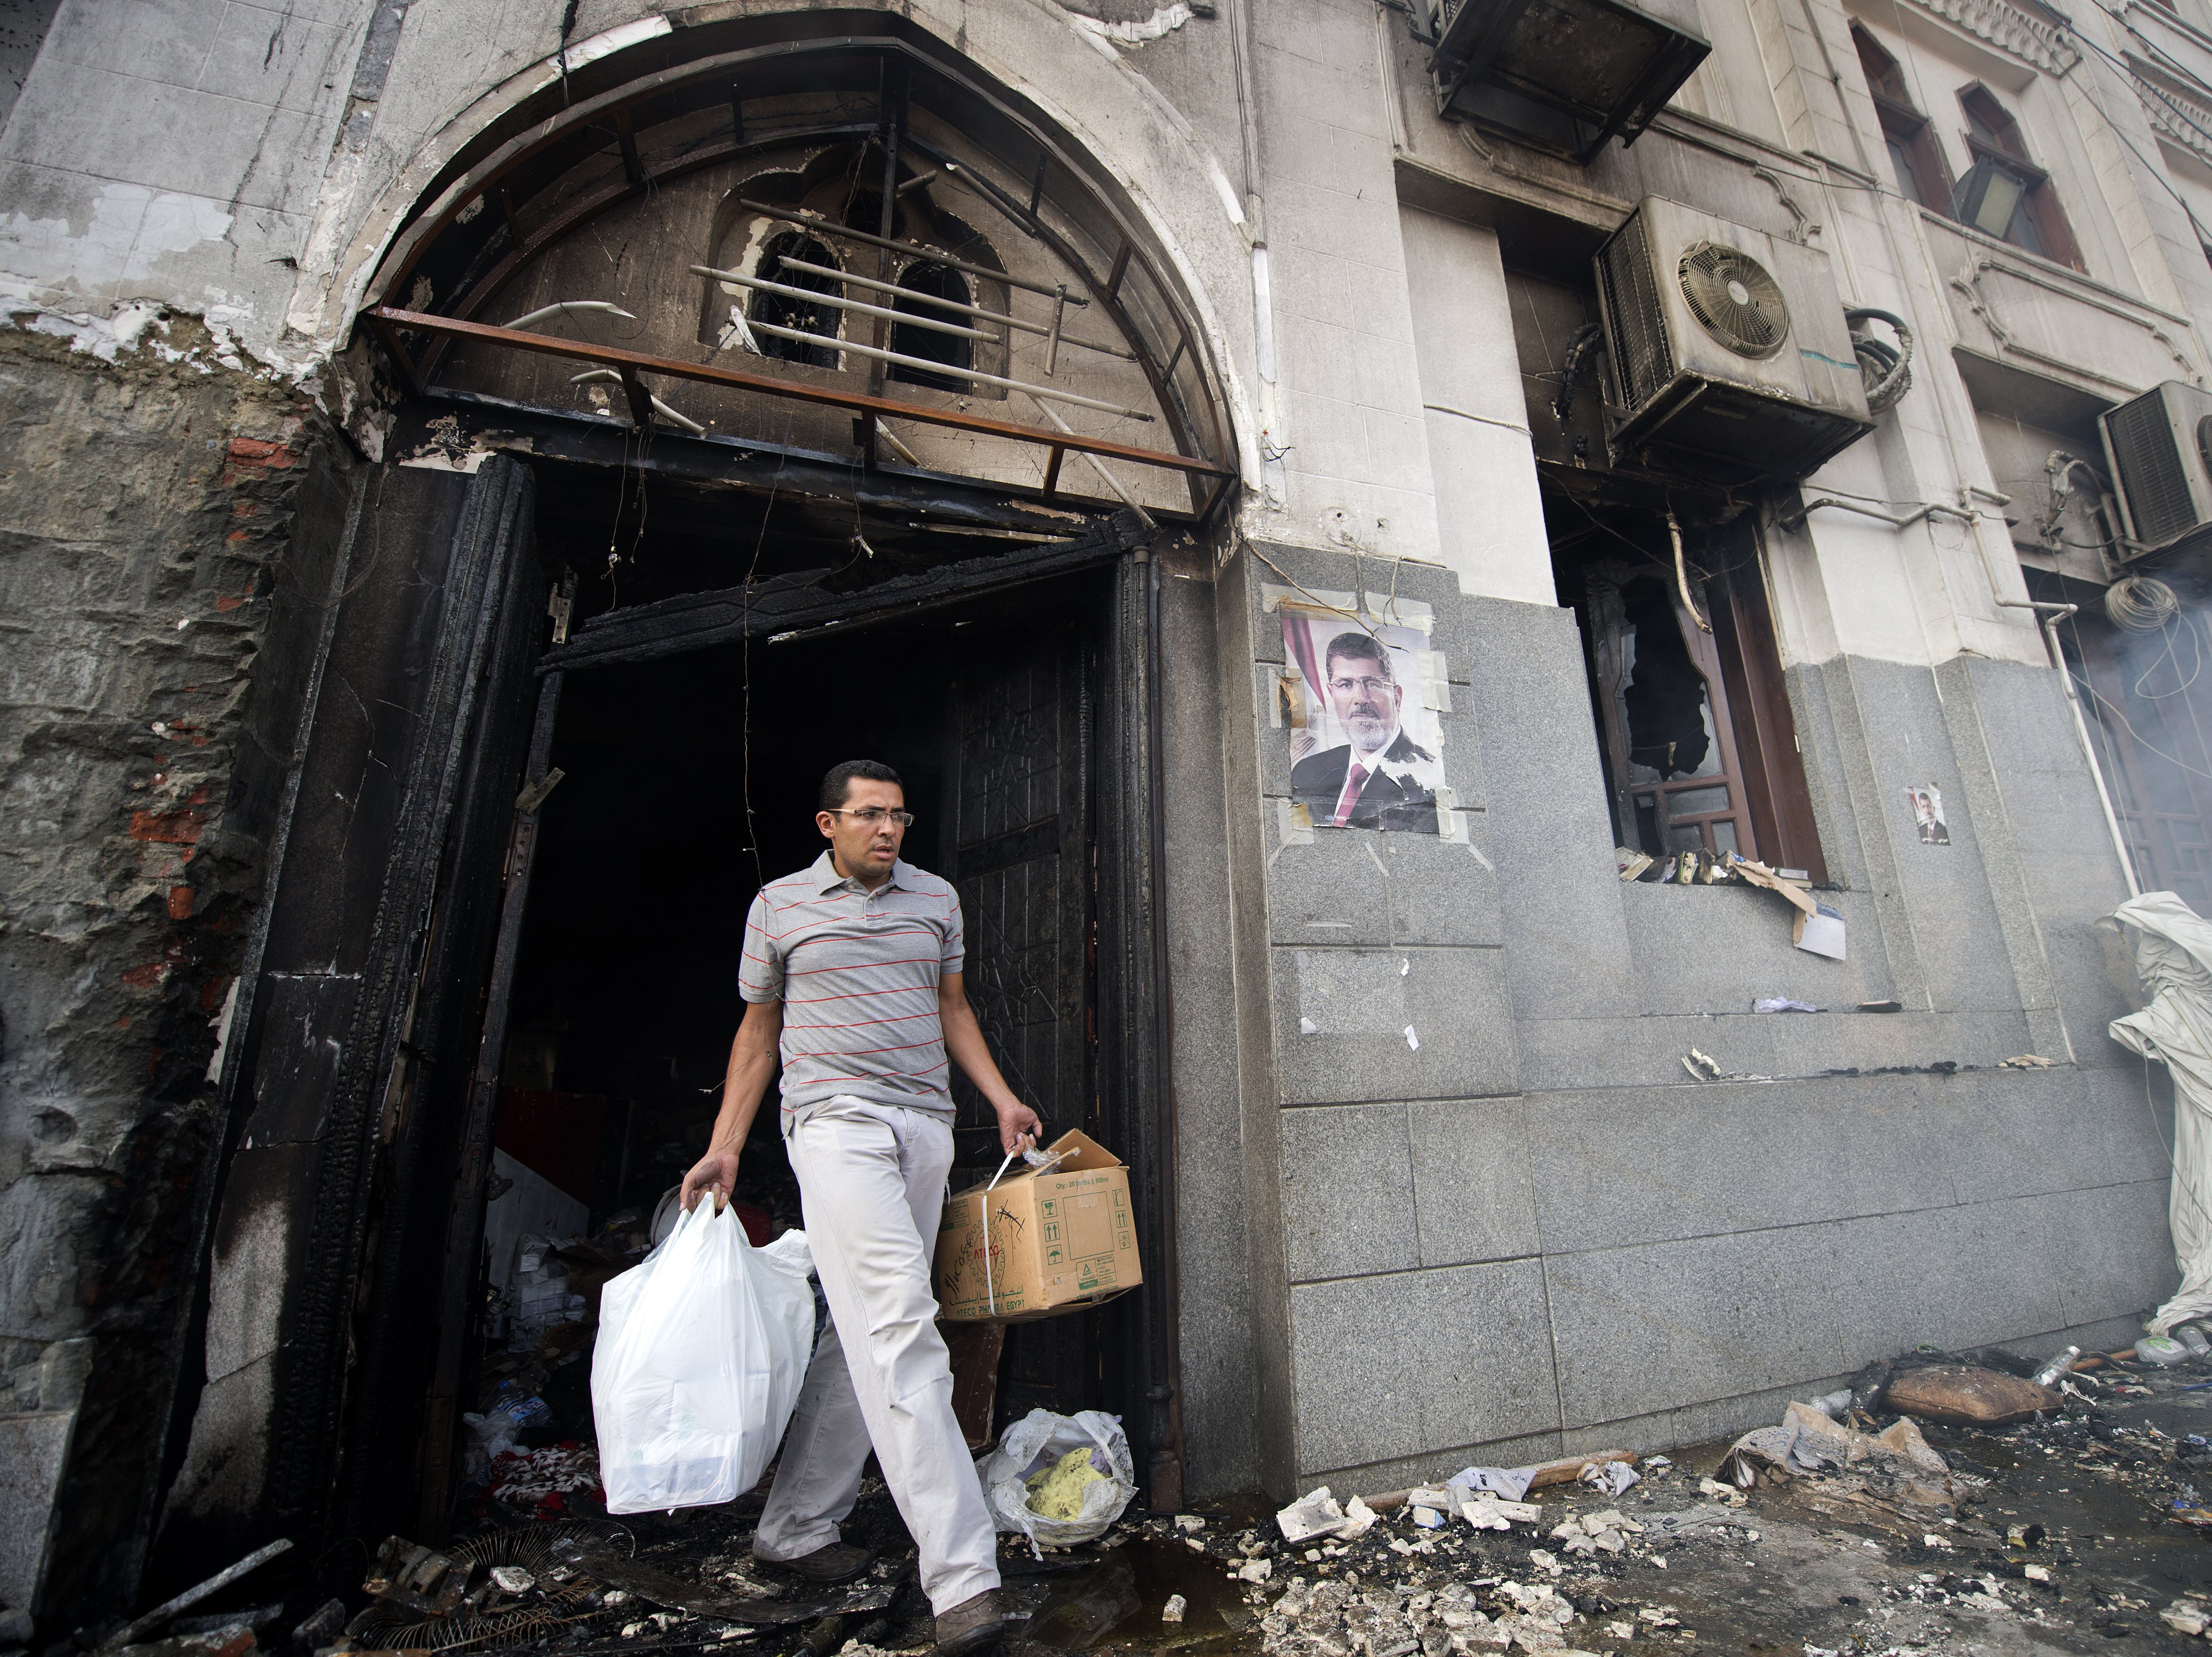 Egypt's Crackdown On Islamists Spreads To Mosques, Charities